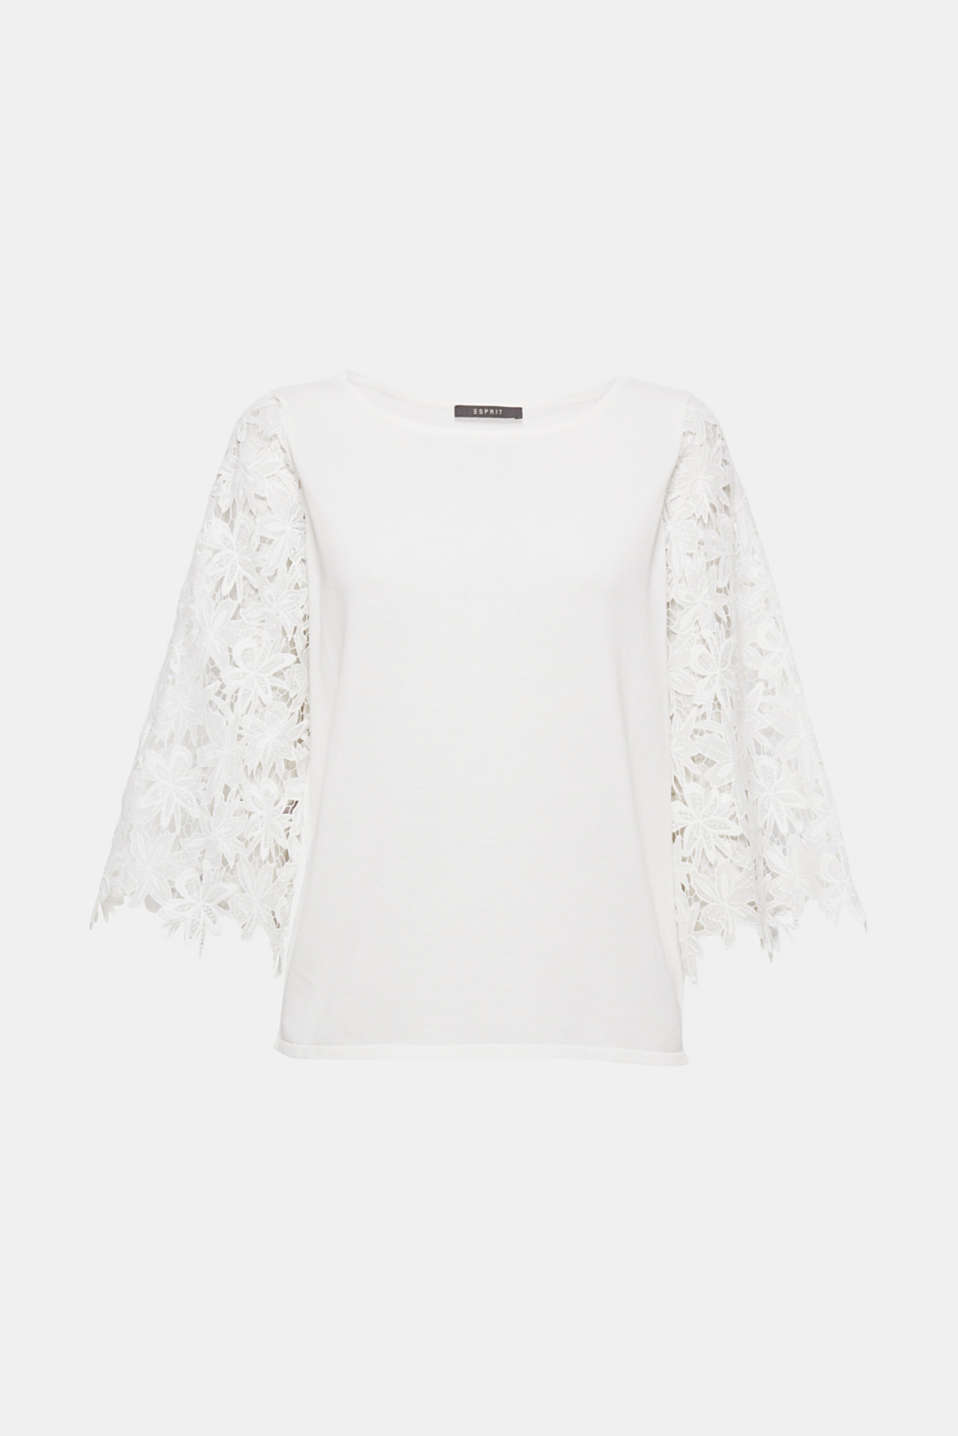 This soft, fine-knit jumper with floral lace sleeves is feminine, pretty and versatile.